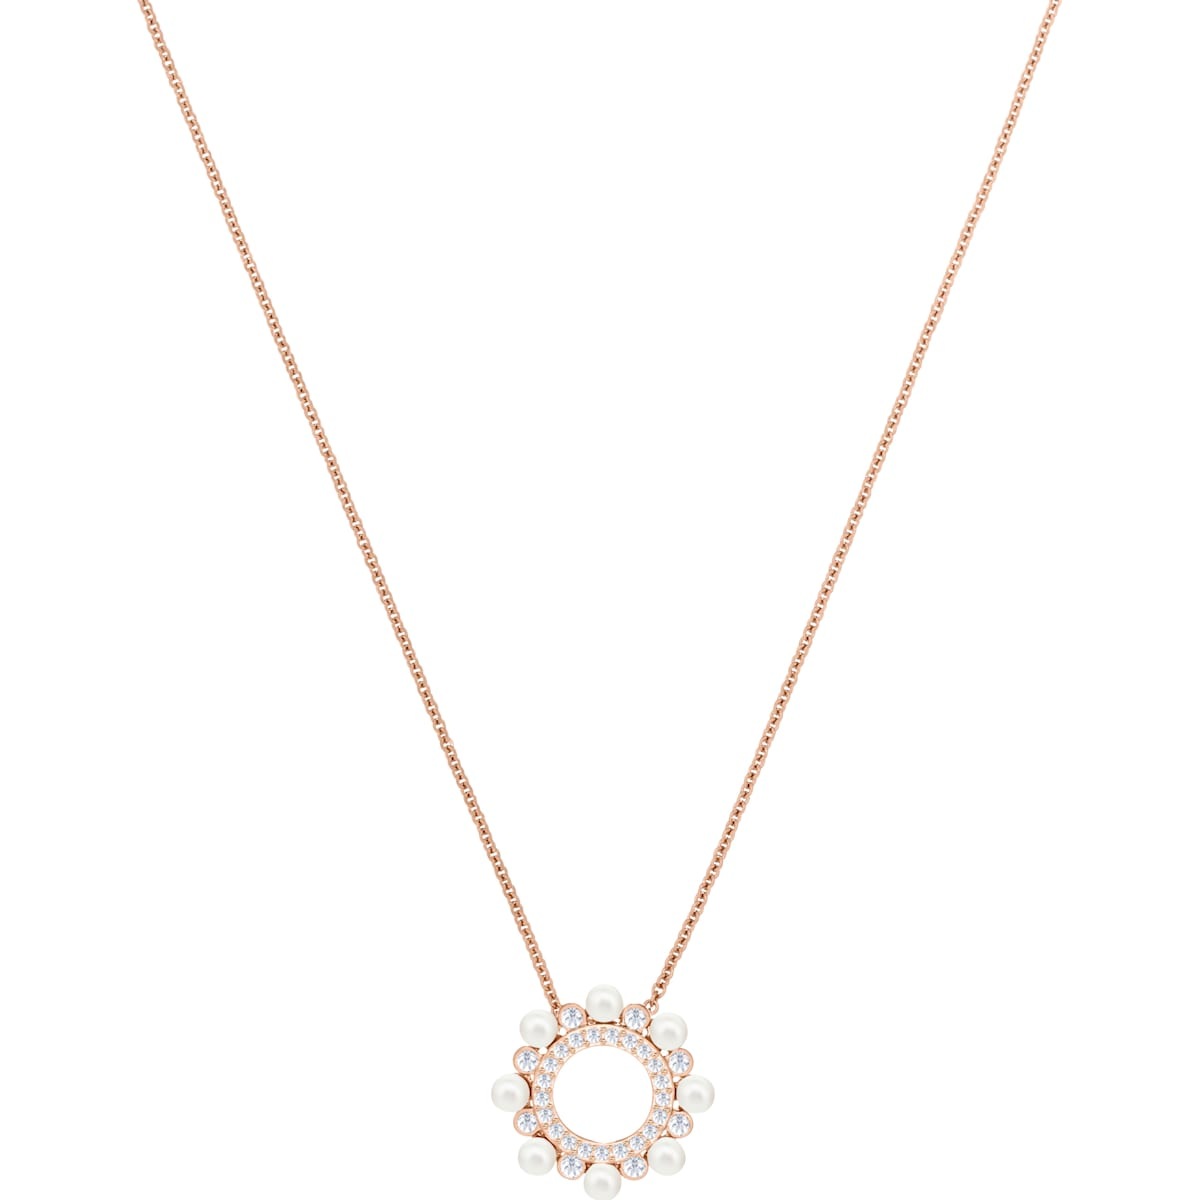 a18f3c540da4f Major Pendant, White, Rose-gold tone plated